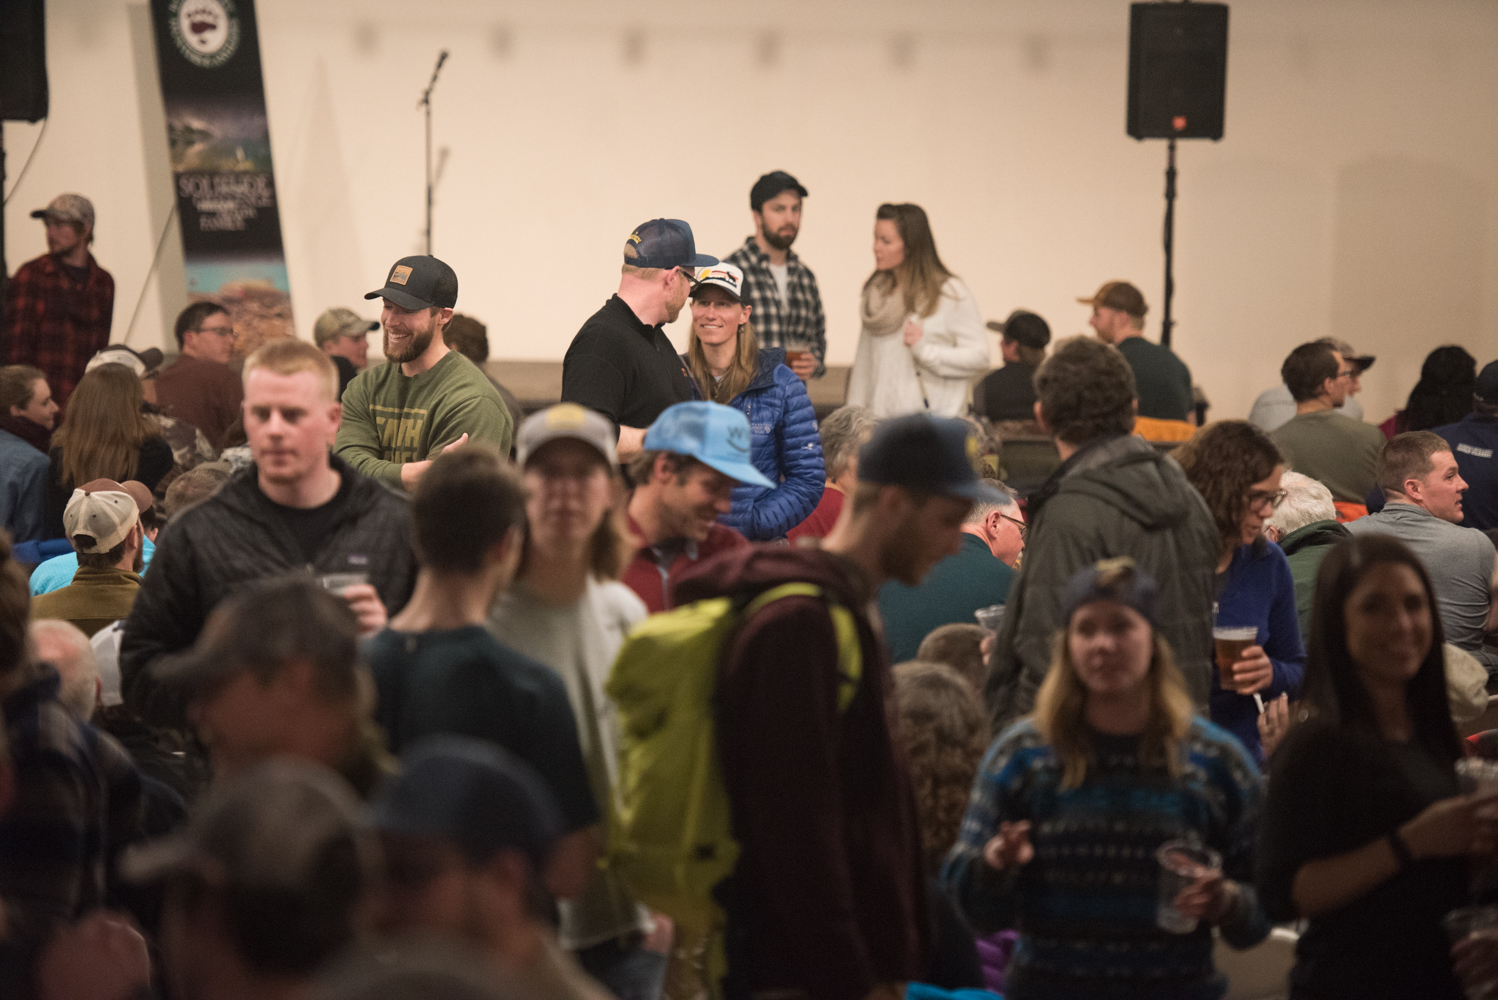 Attendees enjoy Montana craft beer and live stories